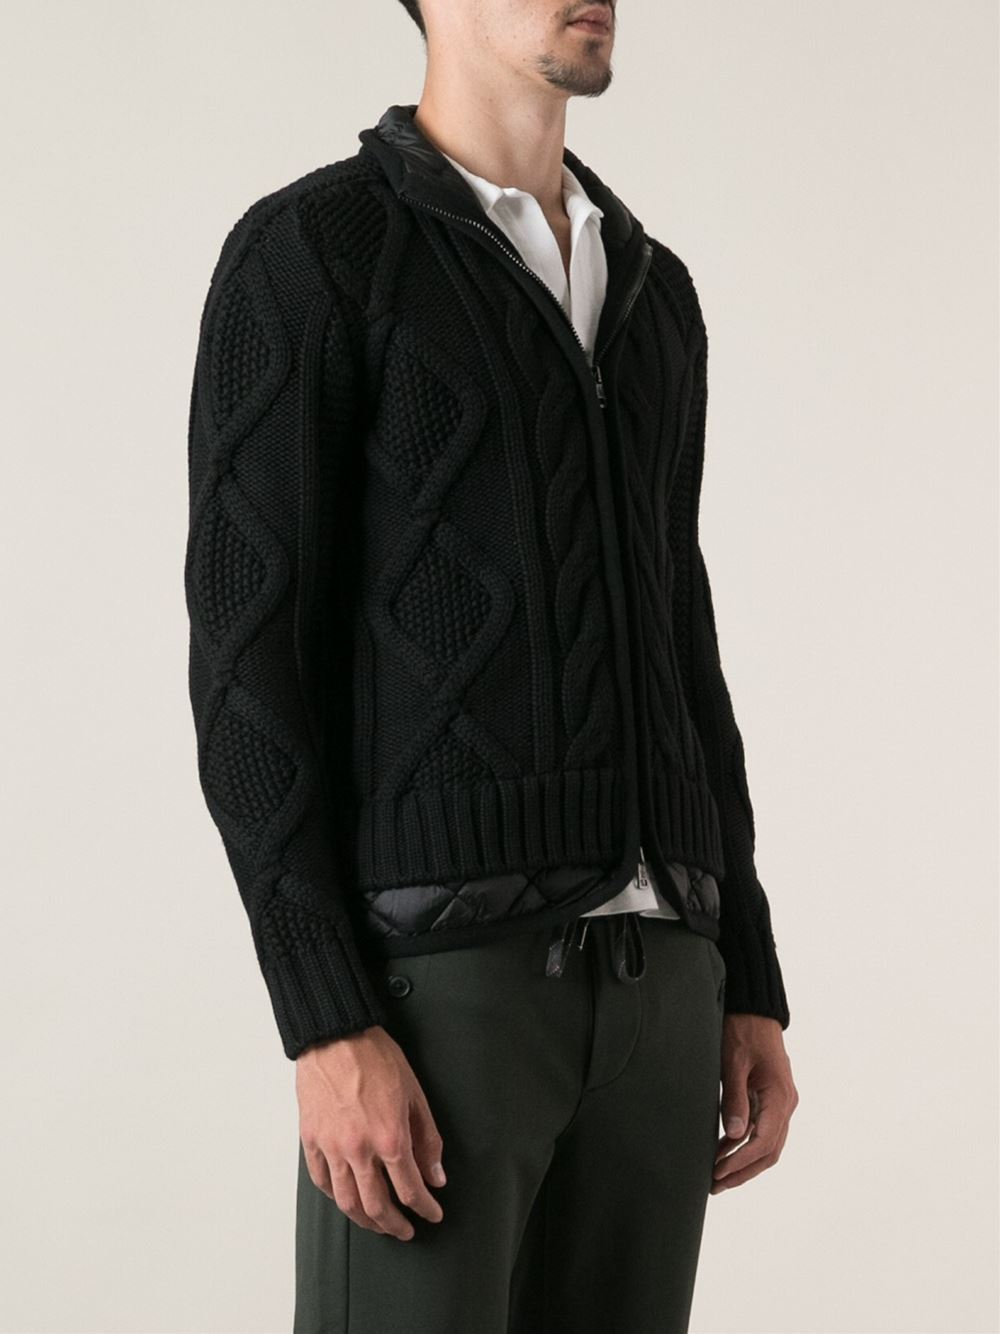 Find great deals on eBay for black zip up sweater. Shop with confidence.